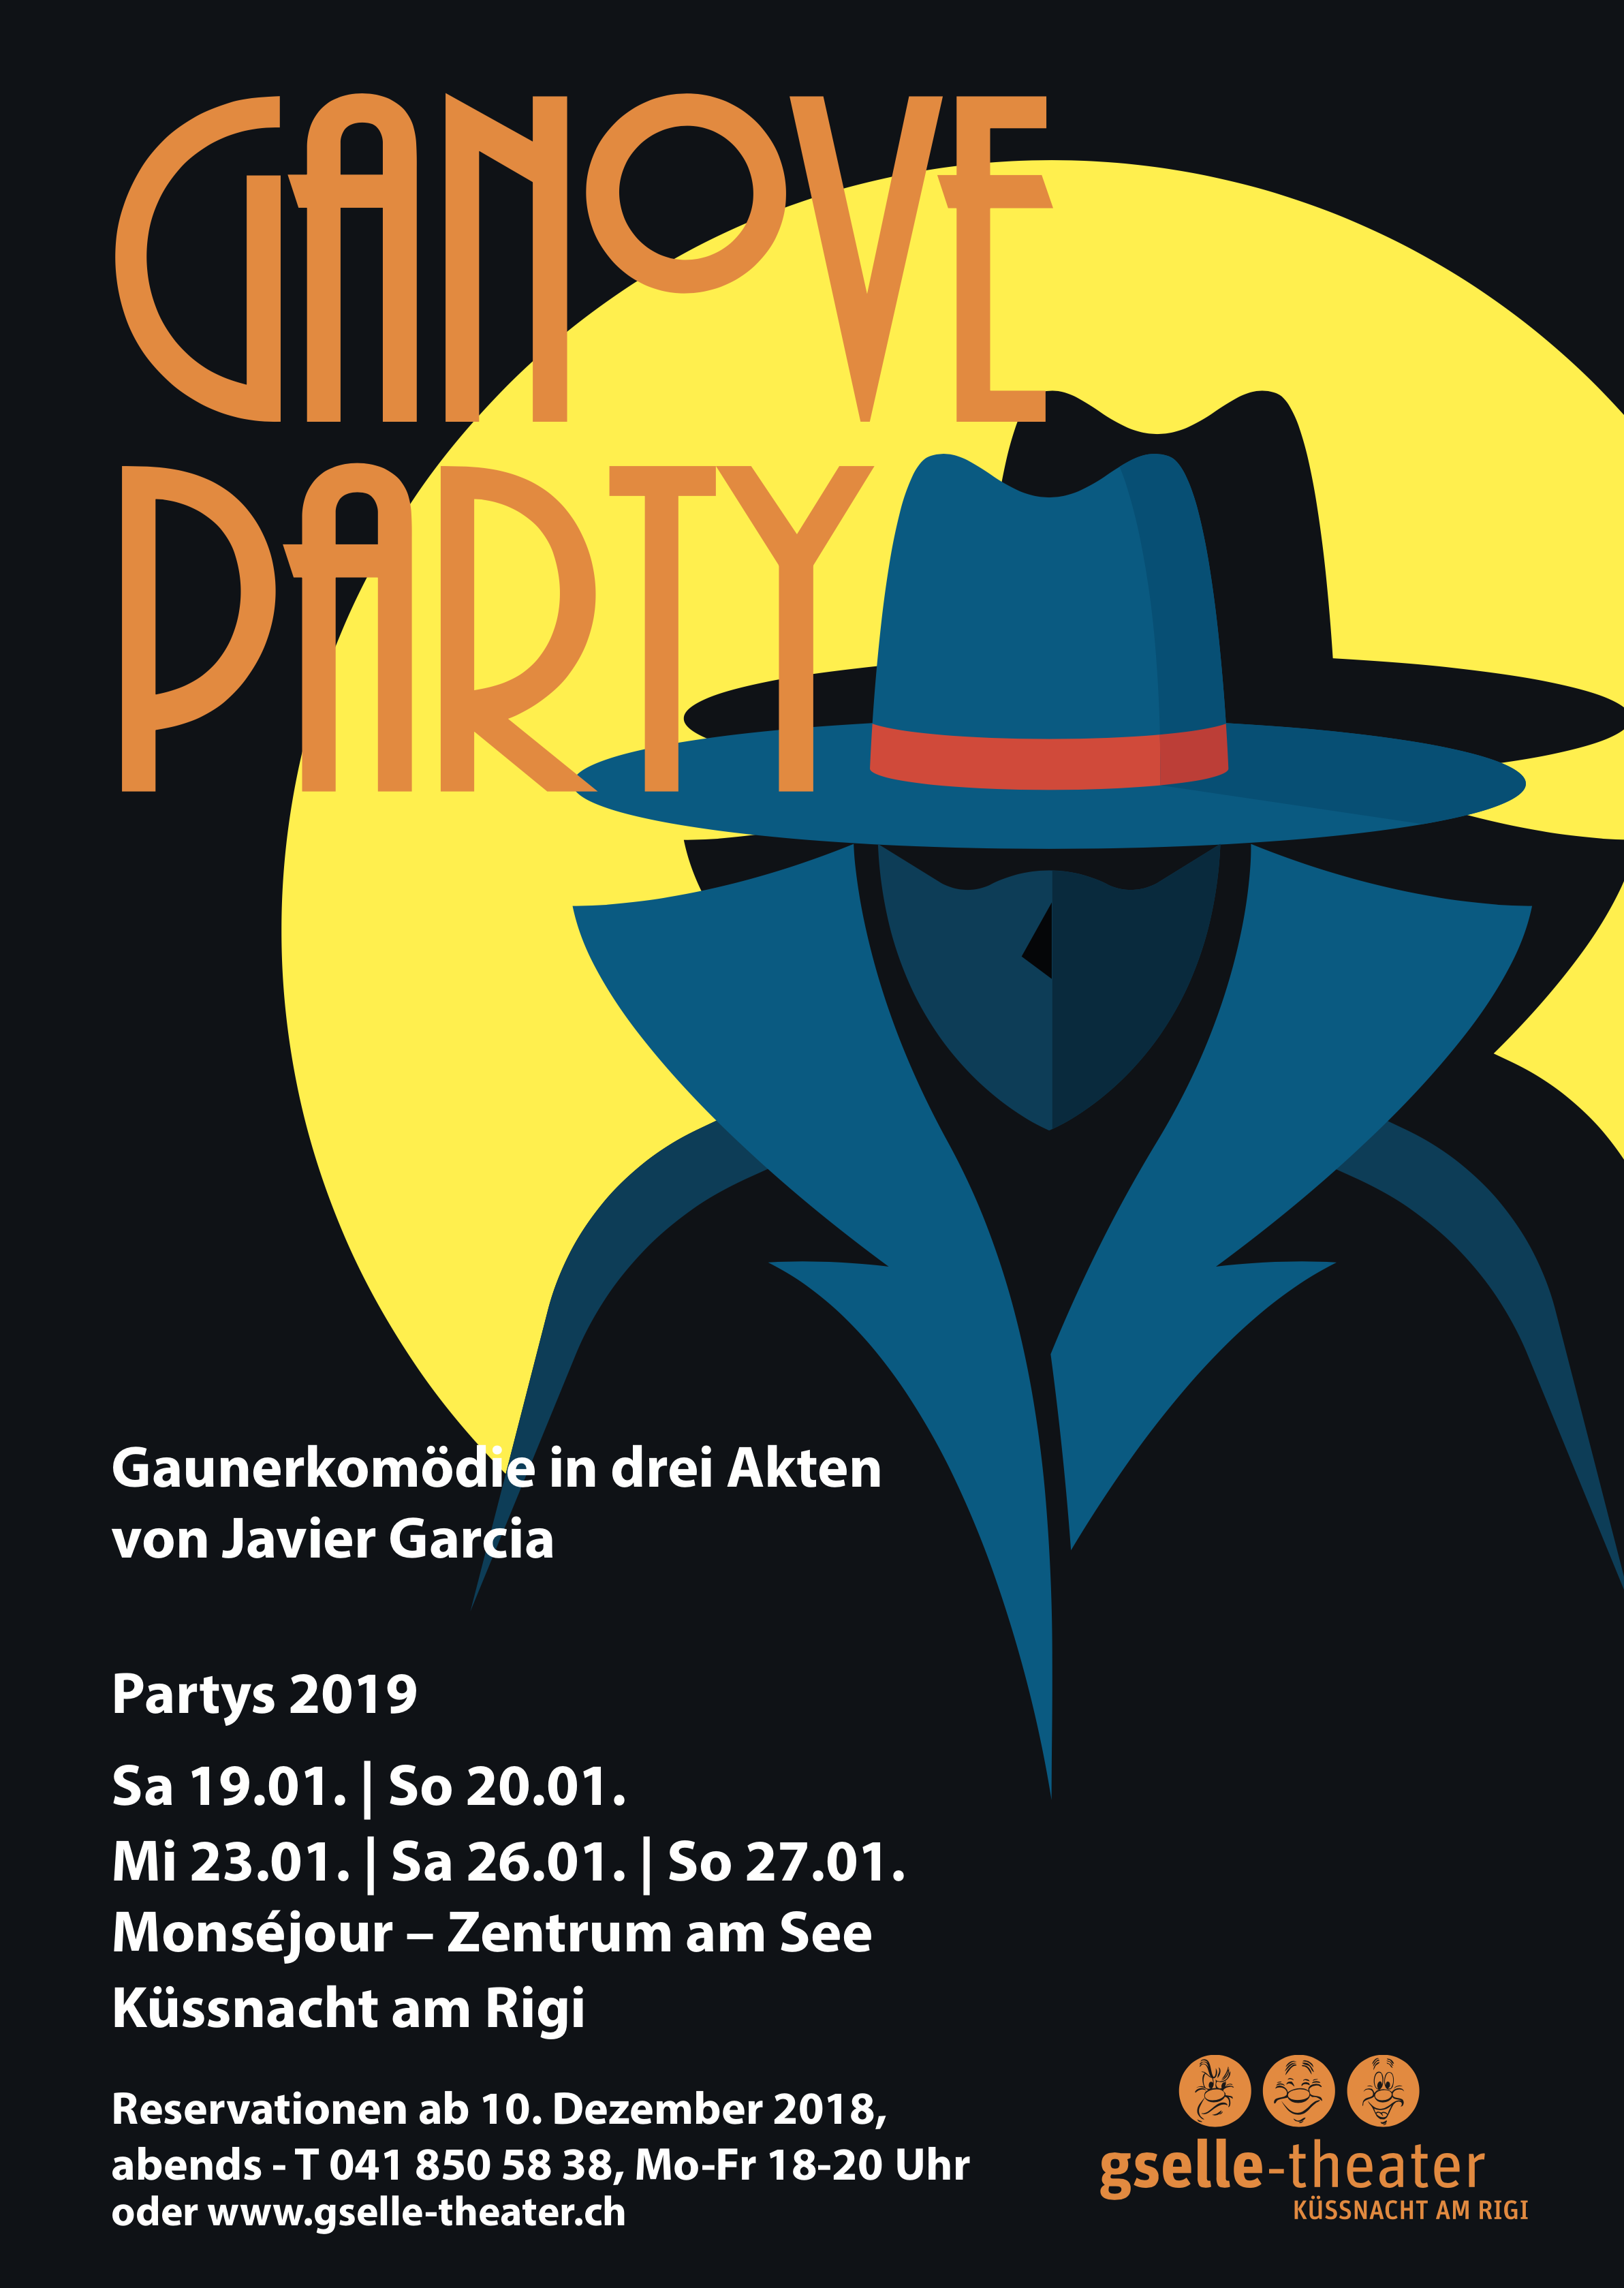 ganoveparty